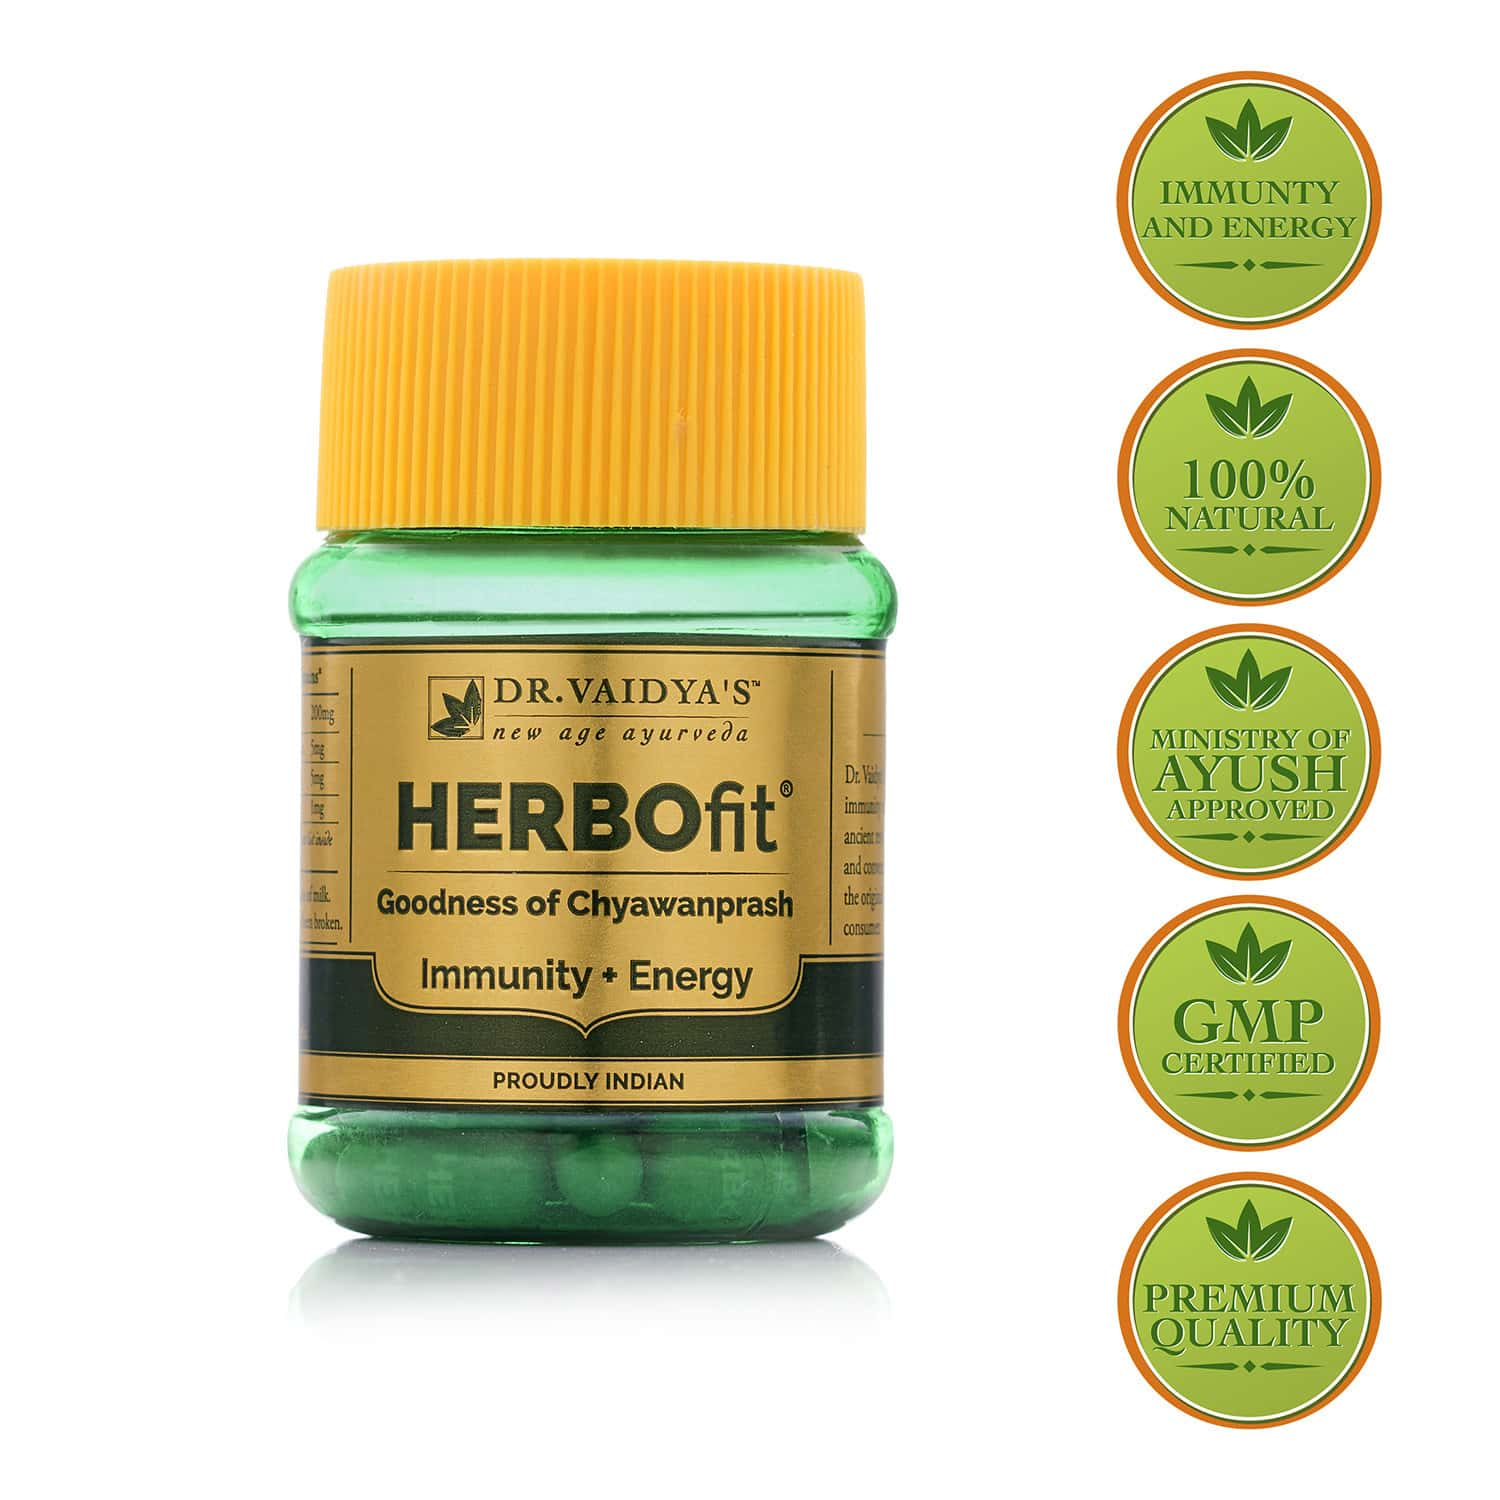 Dr.vaidya's Herbofit | Goodness Of Chywanprash In A Capsule | Boost Immunity & Energy | 30 Capsules Each (pack Of 2)